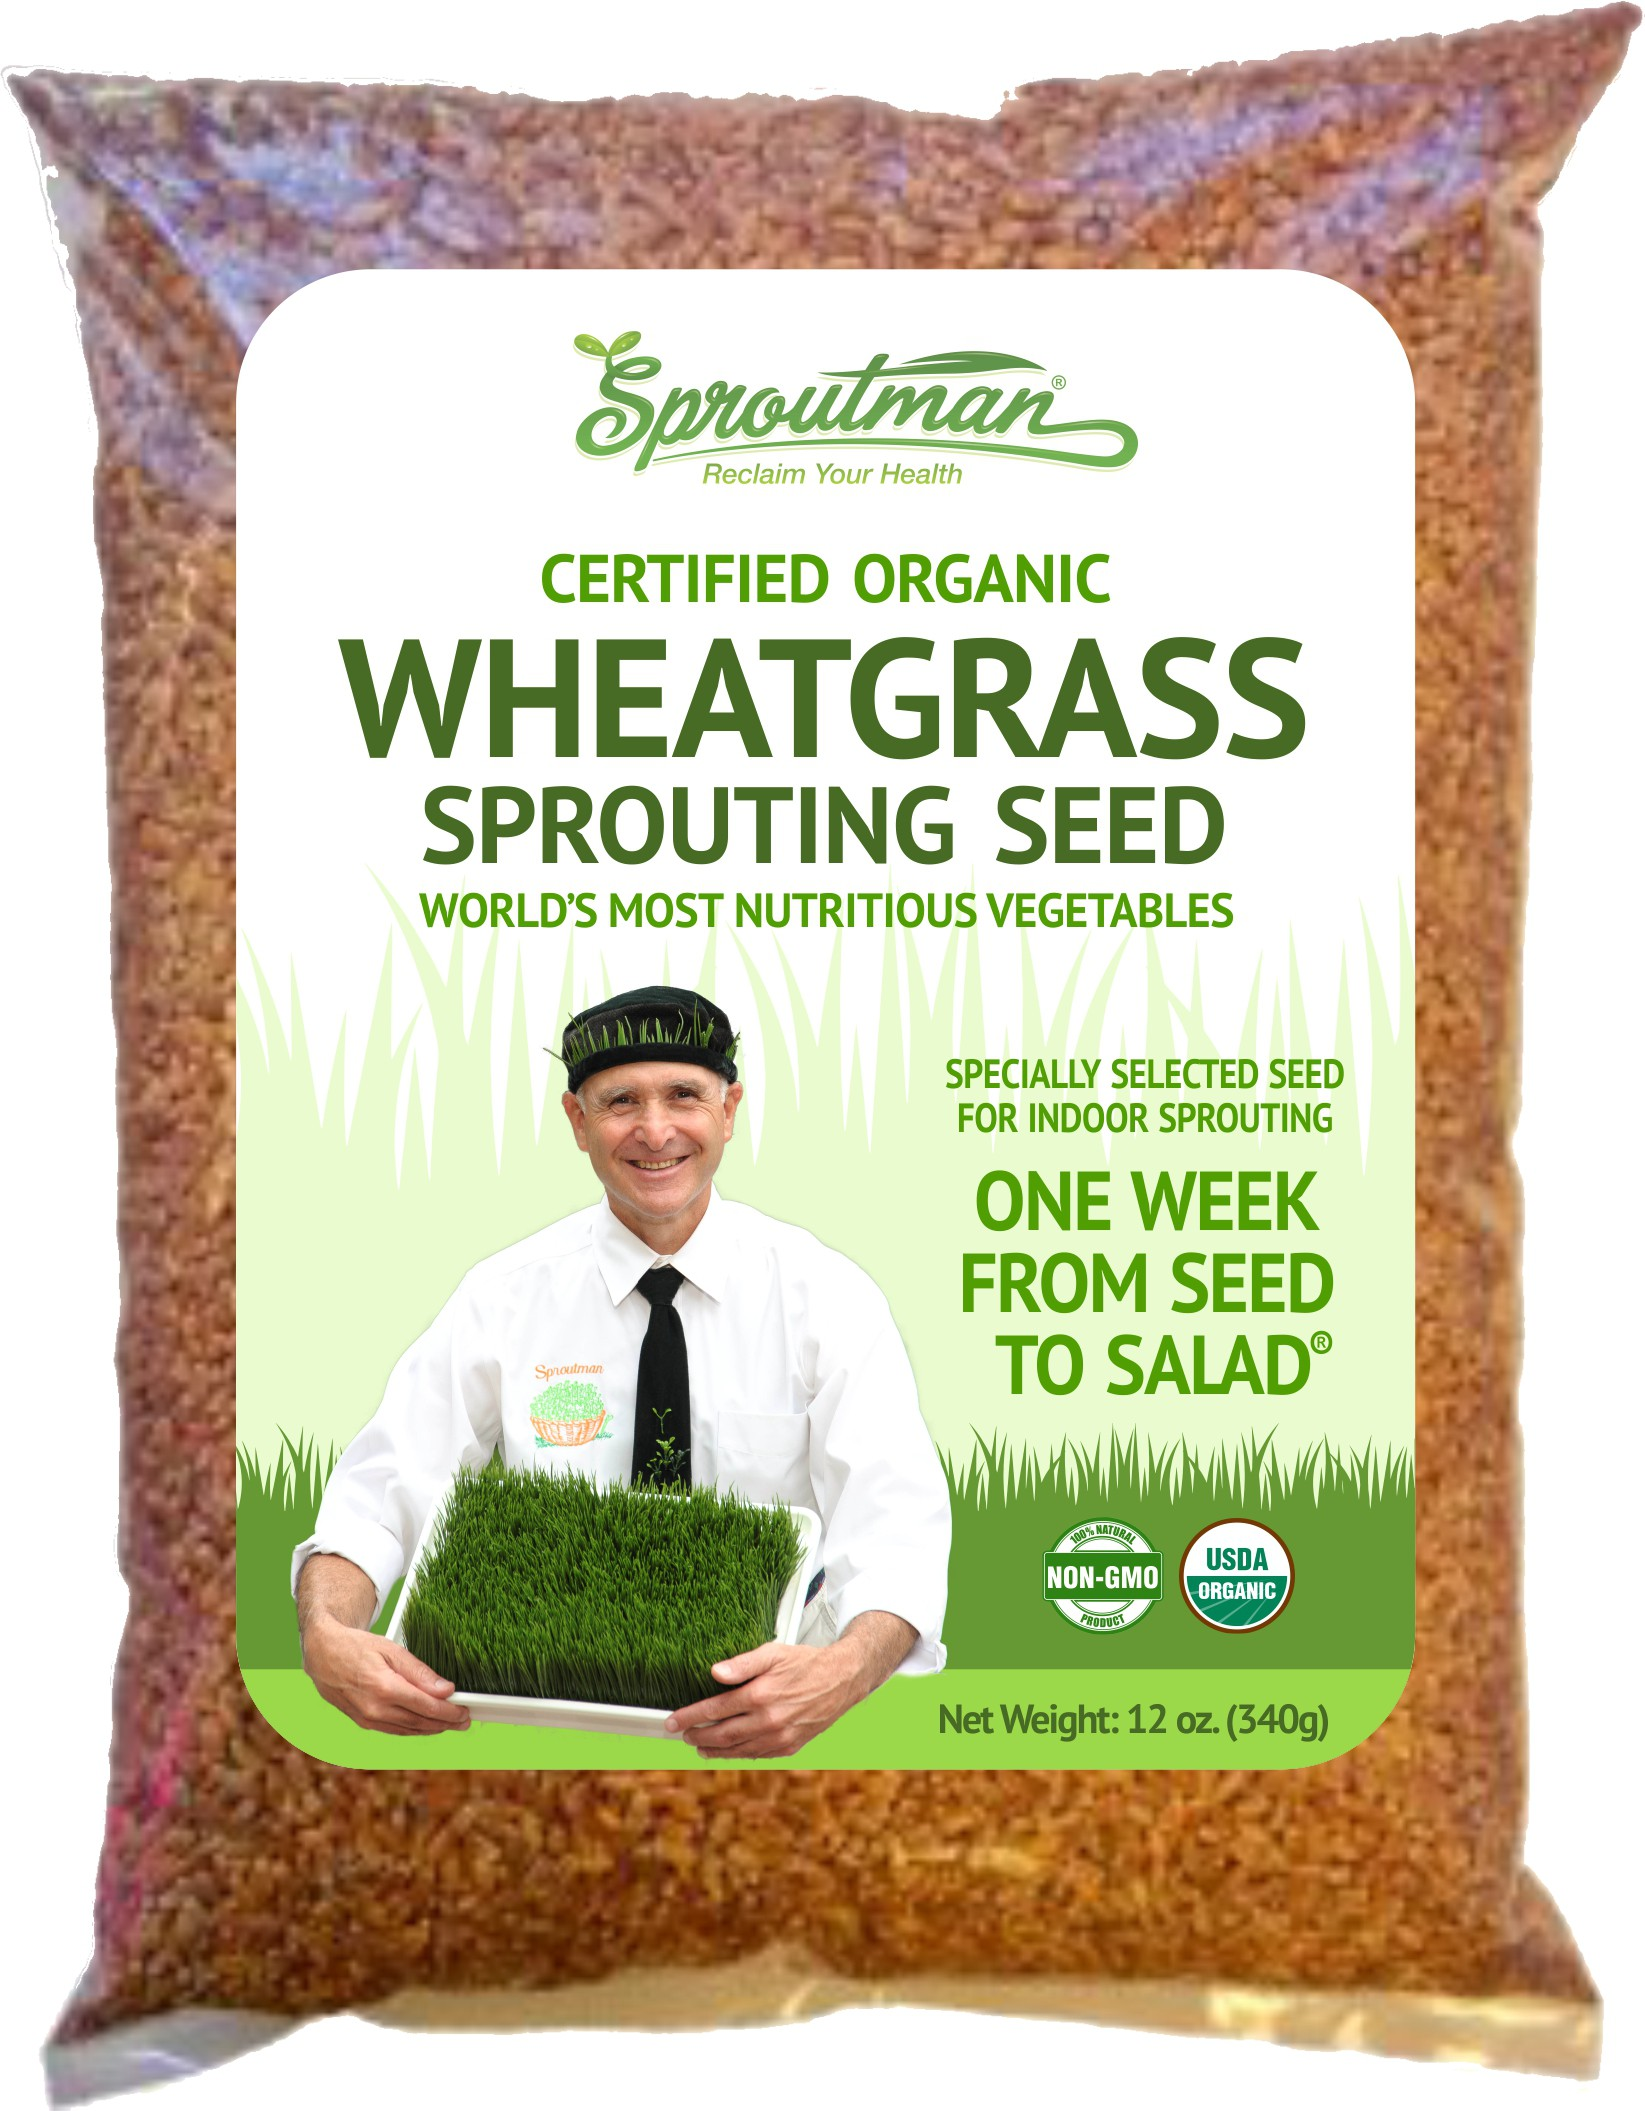 Create a new base label for Sproutman's Organic Sprouting Seeds